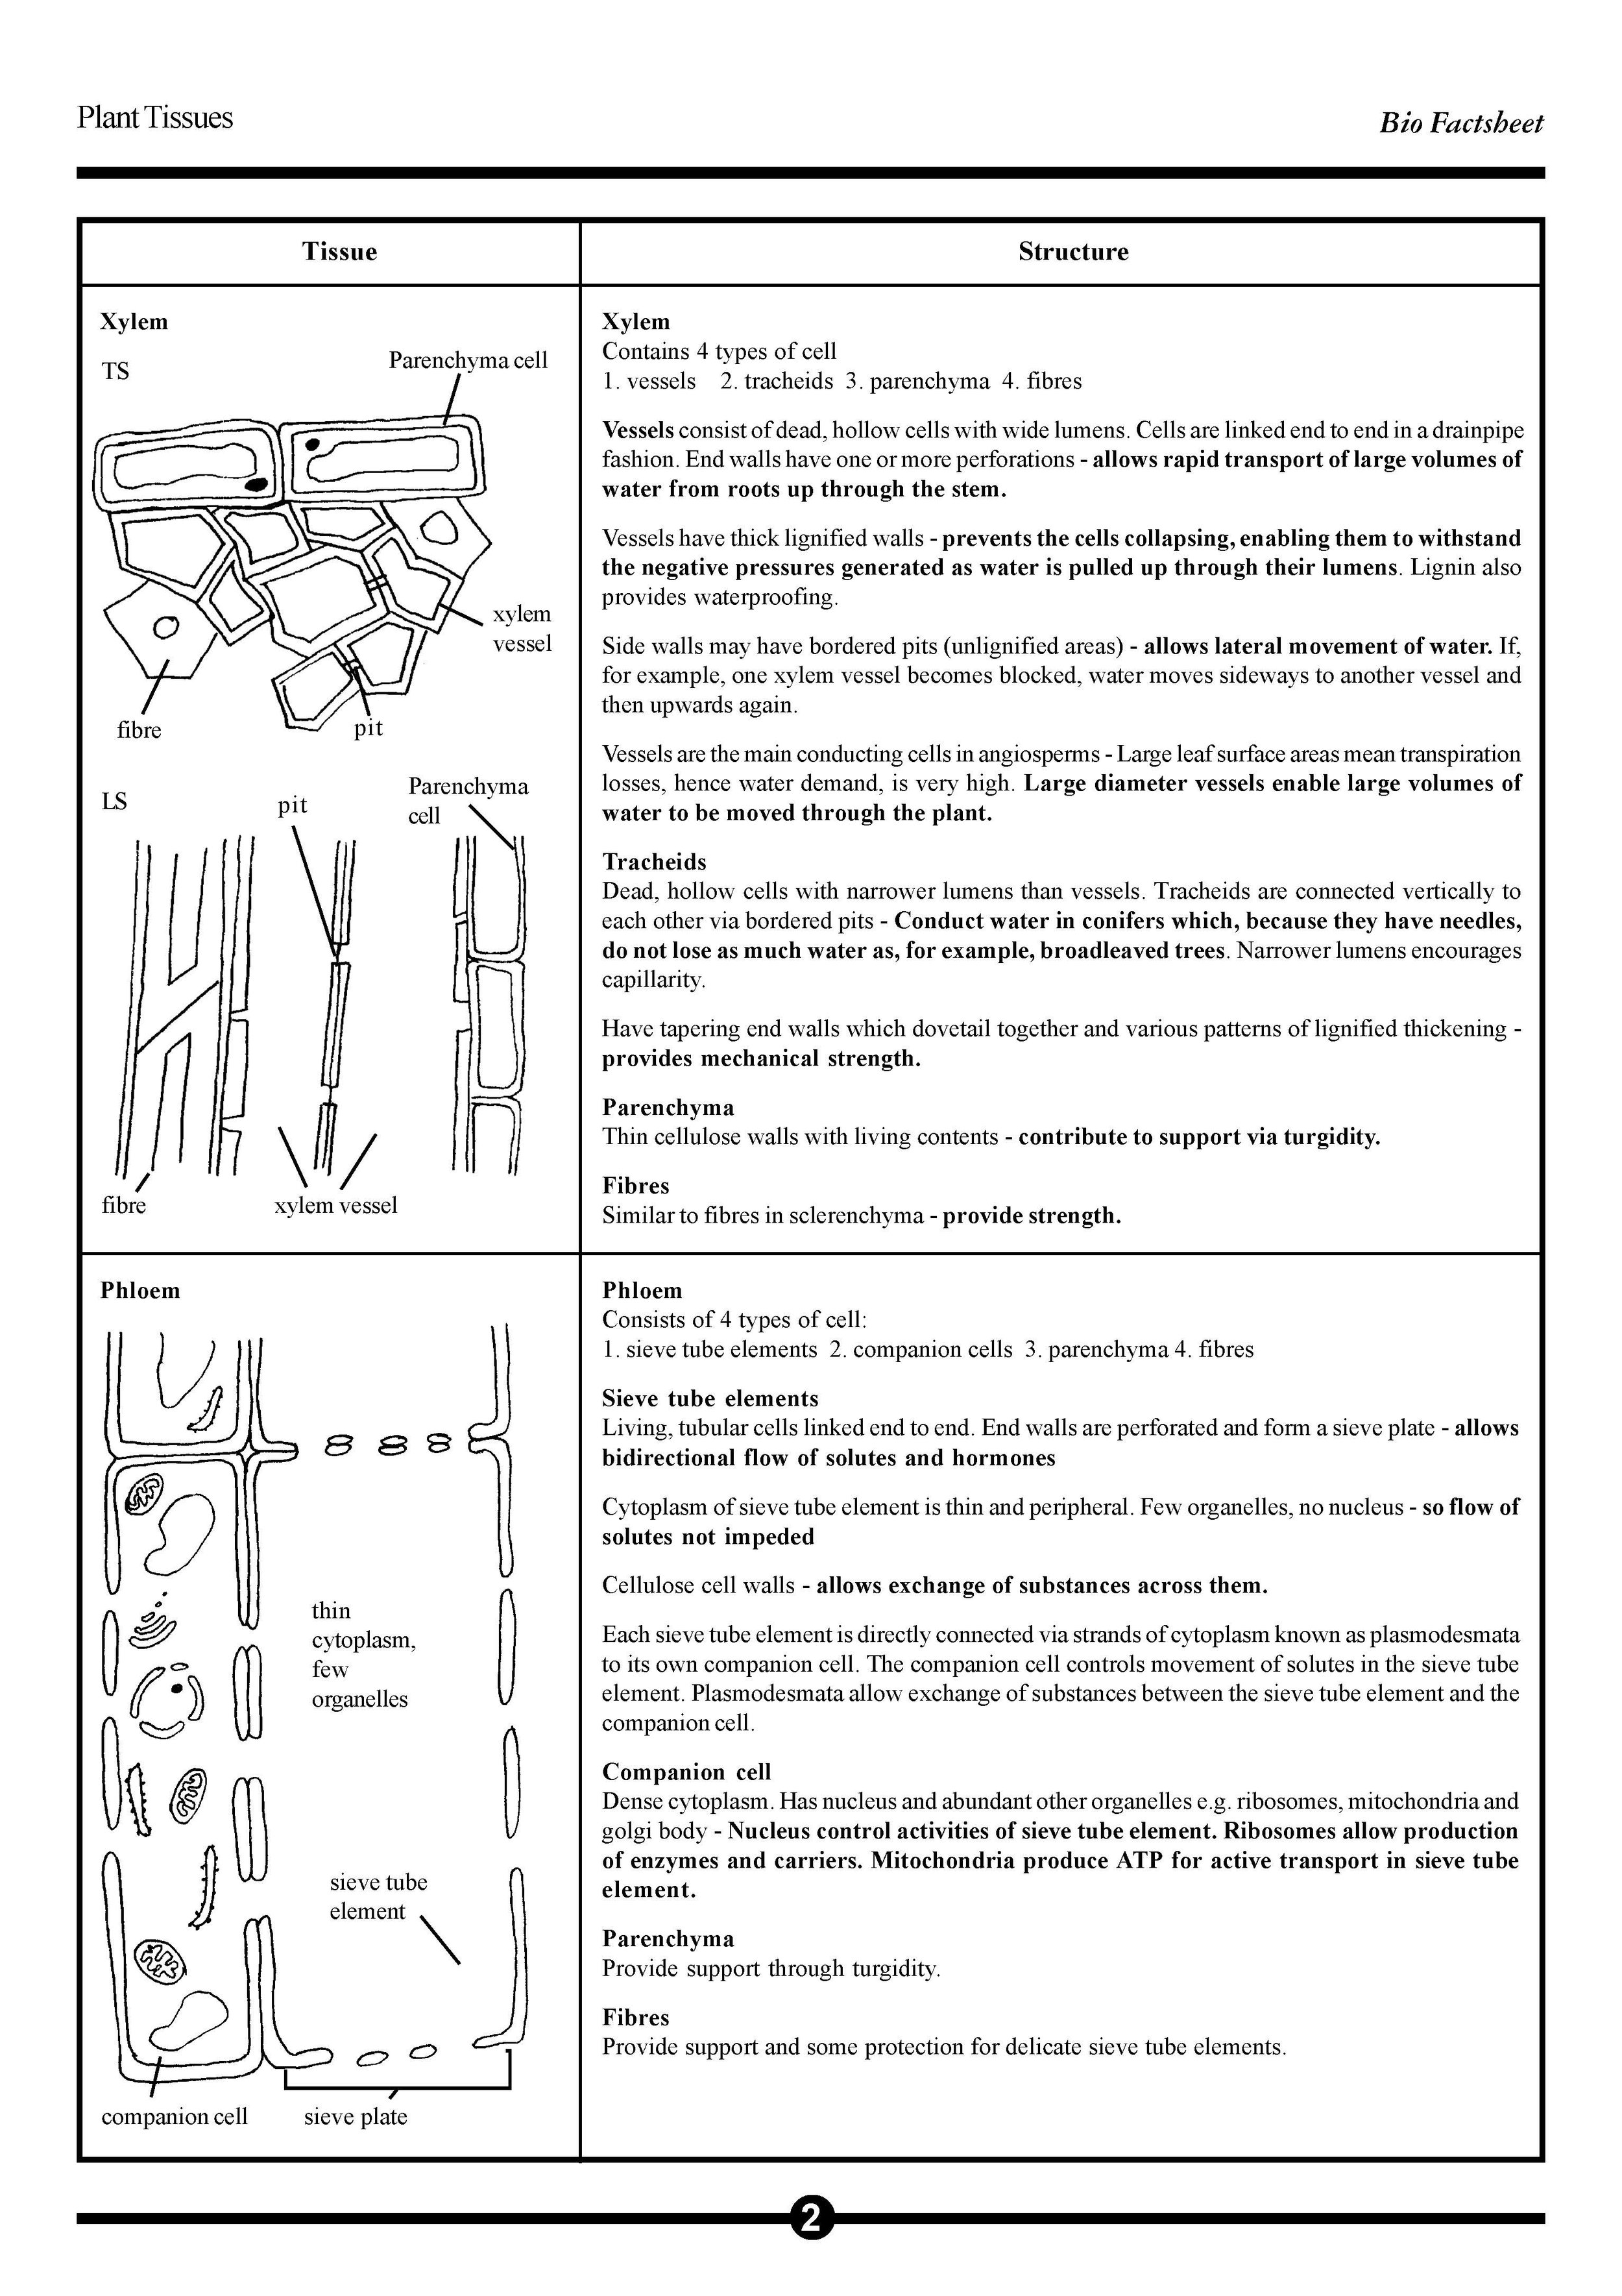 19_PLANT_TISSUES_Page_2.jpg